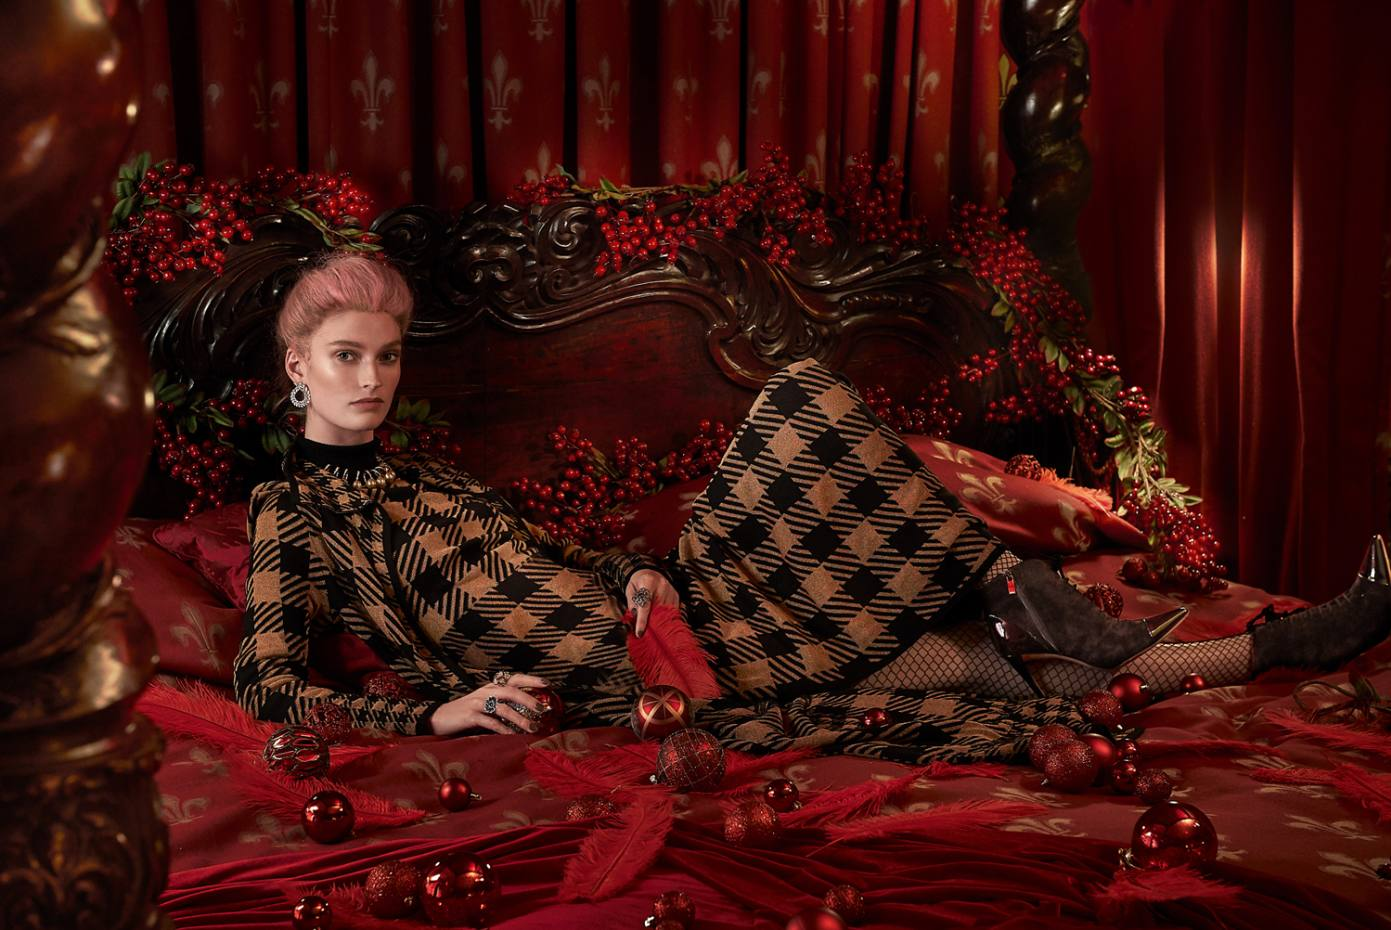 Temperley wool Trophy cardigan, £795, and matching dress, £795. UK Tights Fiore Myrna fishnet tights, £6.99. Gina suede and patent leather boots, £695. Chopard white gold and diamond Laurel earrings, white gold, diamond, South Sea pearl, ruby, blue sapphire, pink sapphire, amethyst and tourmaline necklace, (from left) white gold, diamond and sapphire ring, rose gold and diamond ring, and white gold ring, all price on request  VV Rouleaux berry garlands (seen throughout), £47 each. Christmas baubles, from £5.95, from Liberty. Small plain baubles, £29.99 for 100, from The Magic Toy Shop